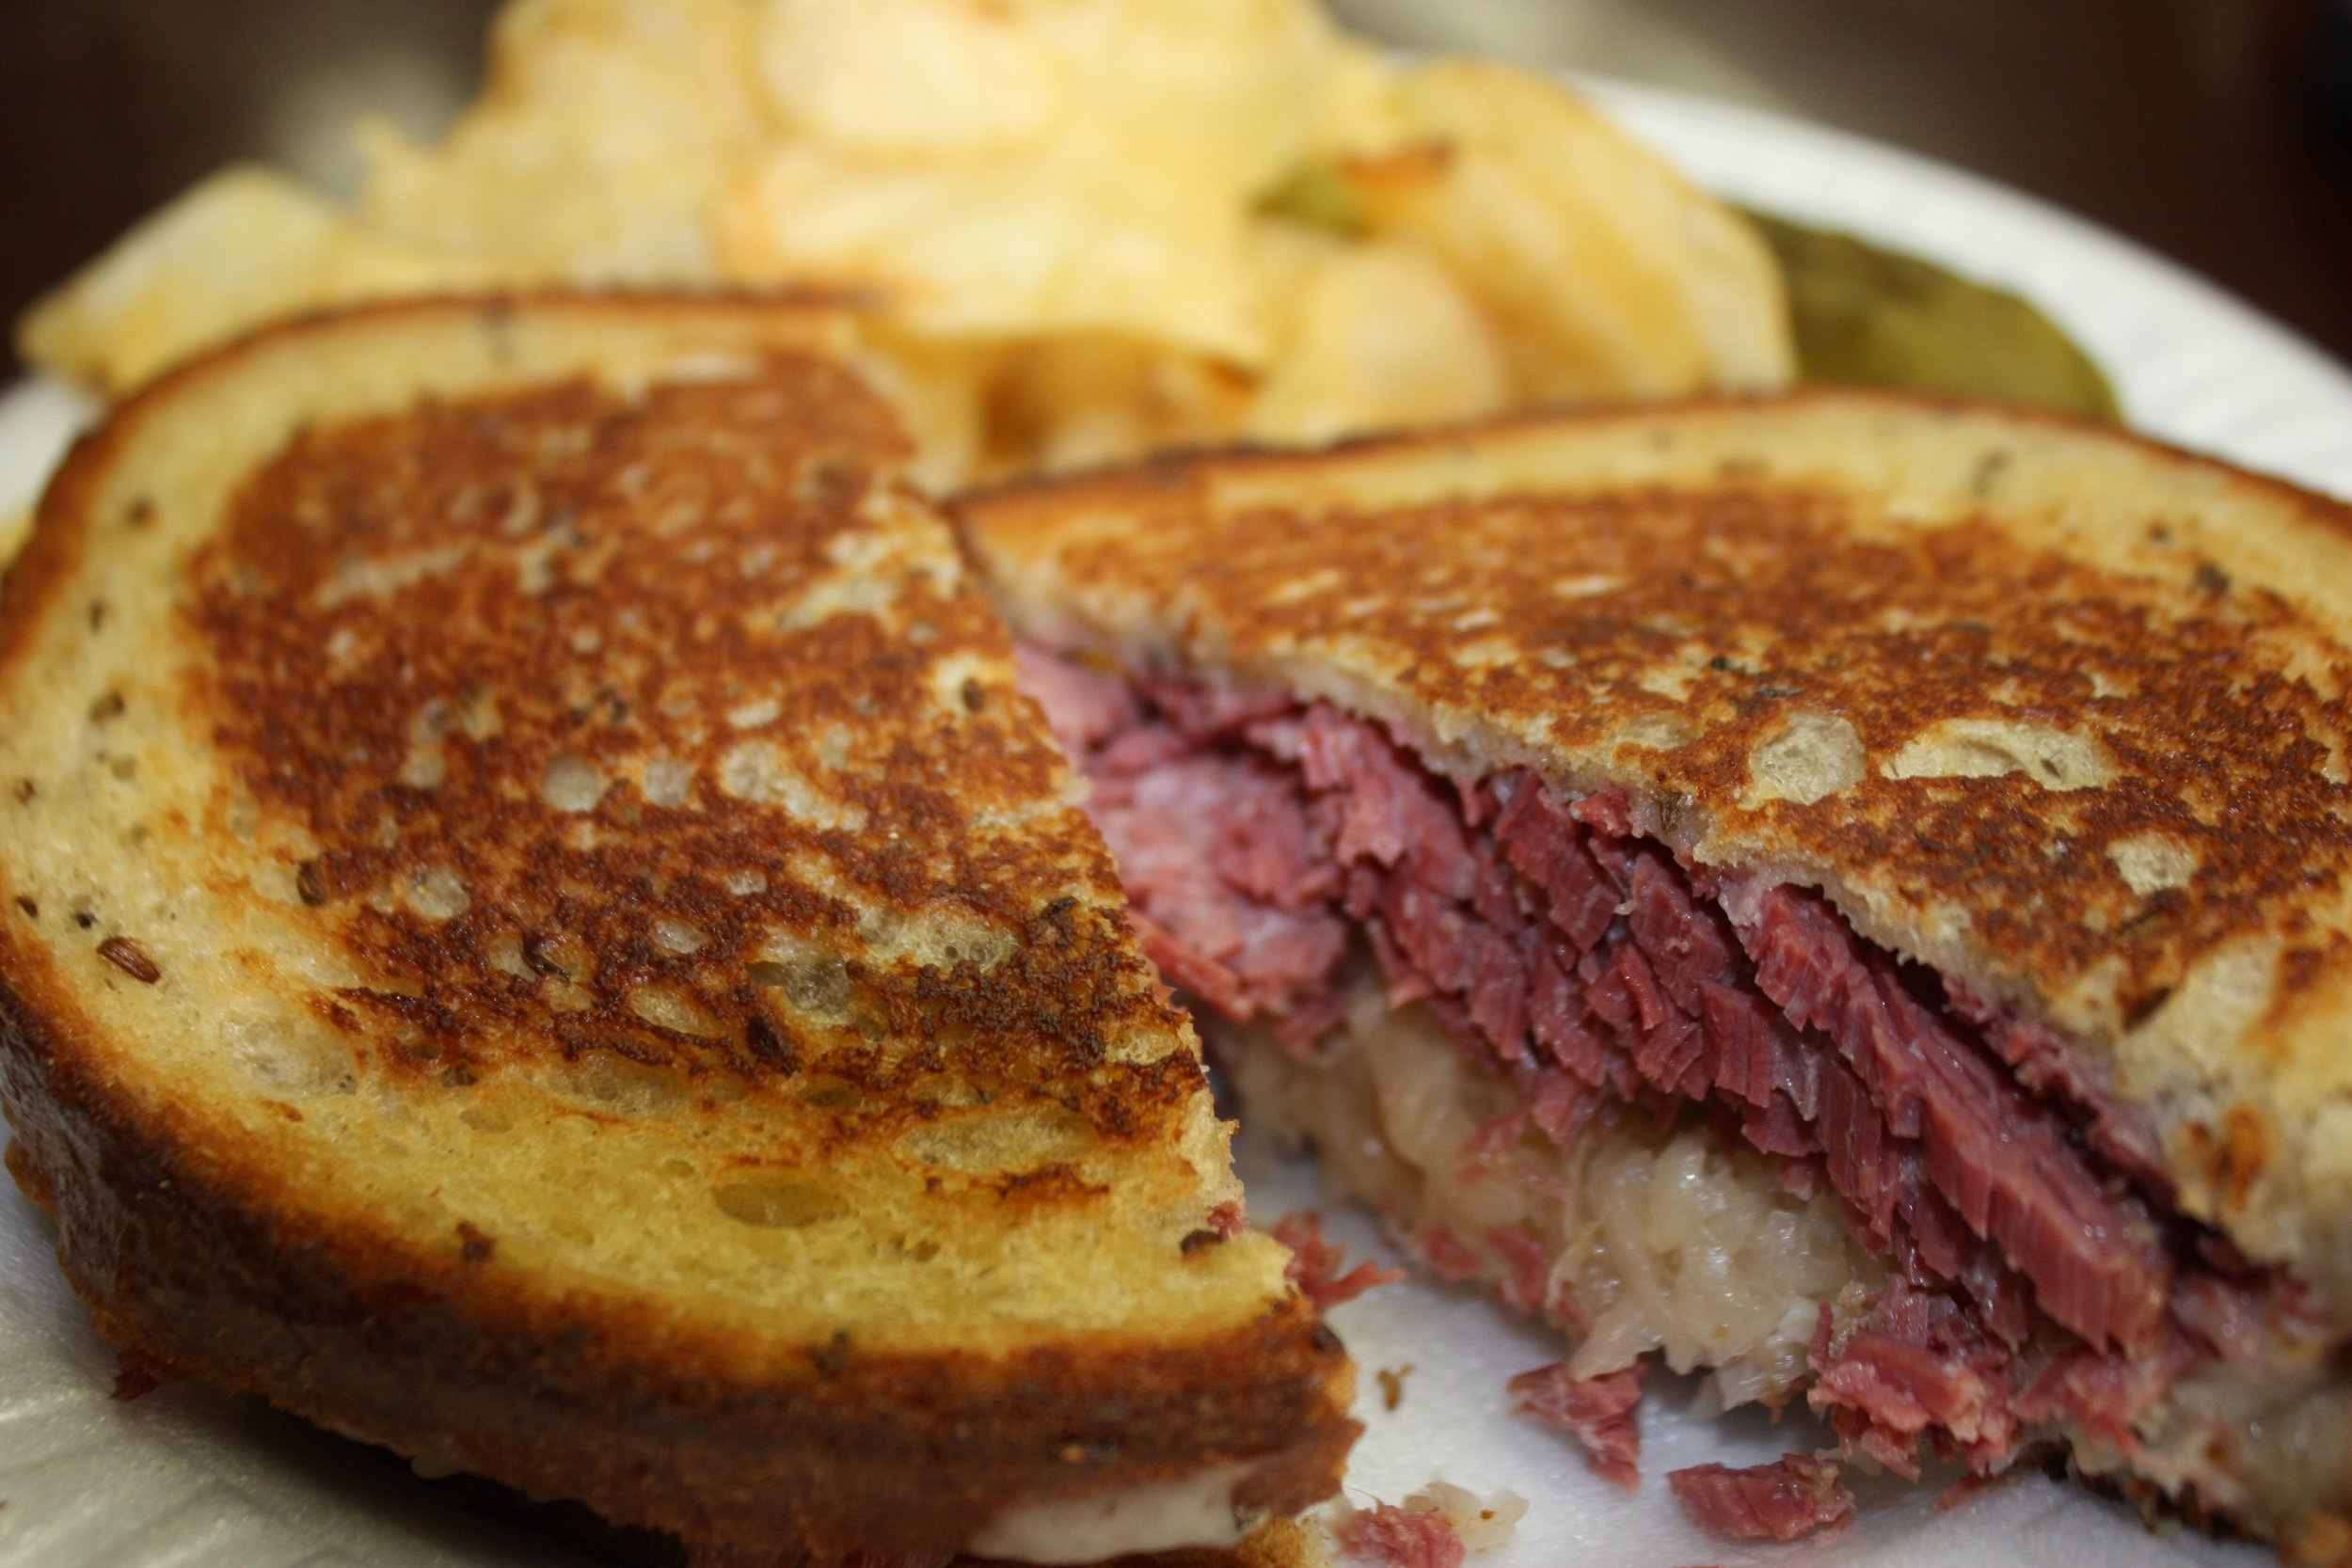 A perfectly-toasted Reuben from Hand Carved by Ernie available in Downtown Rutland.